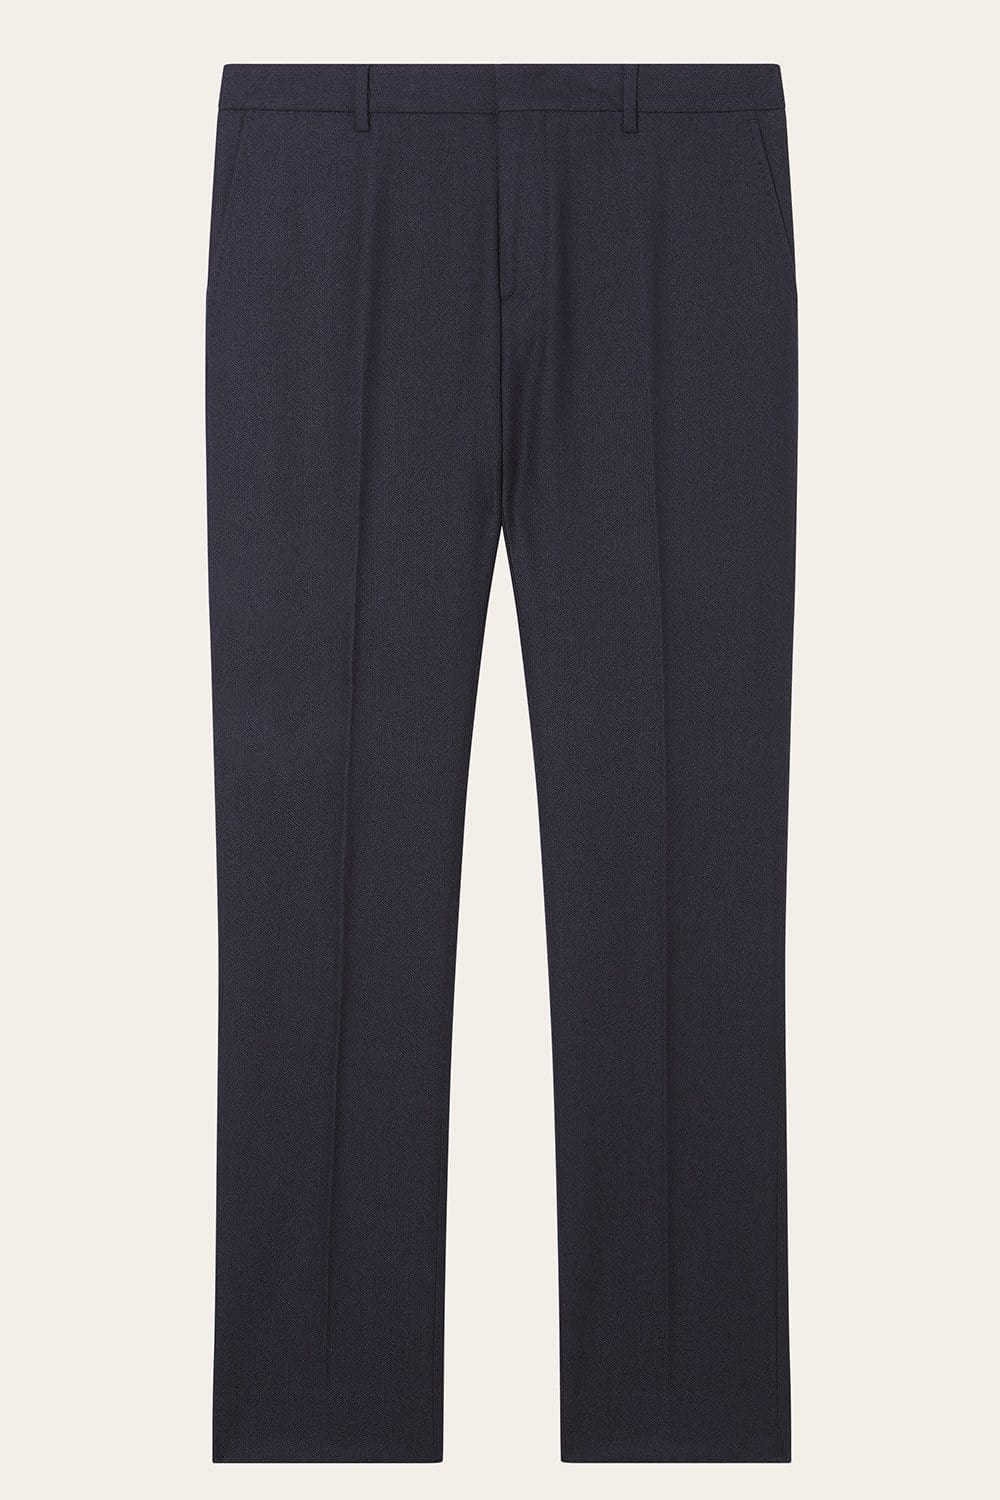 Pantalon Hard - Navy - LAFAURIE